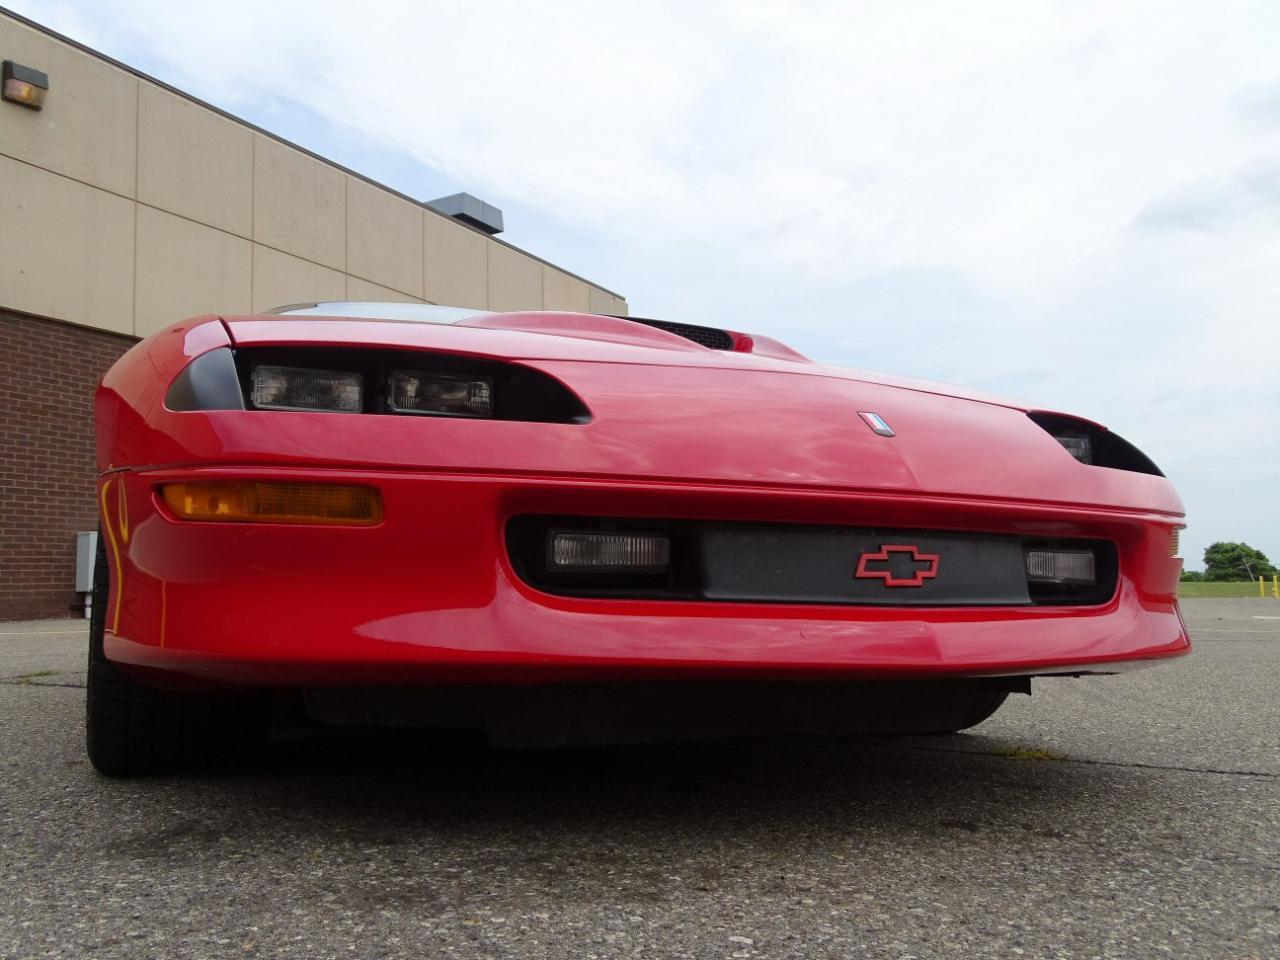 Large Picture of 1996 Camaro located in Dearborn Michigan - $13,595.00 Offered by Gateway Classic Cars - Detroit - LDUP